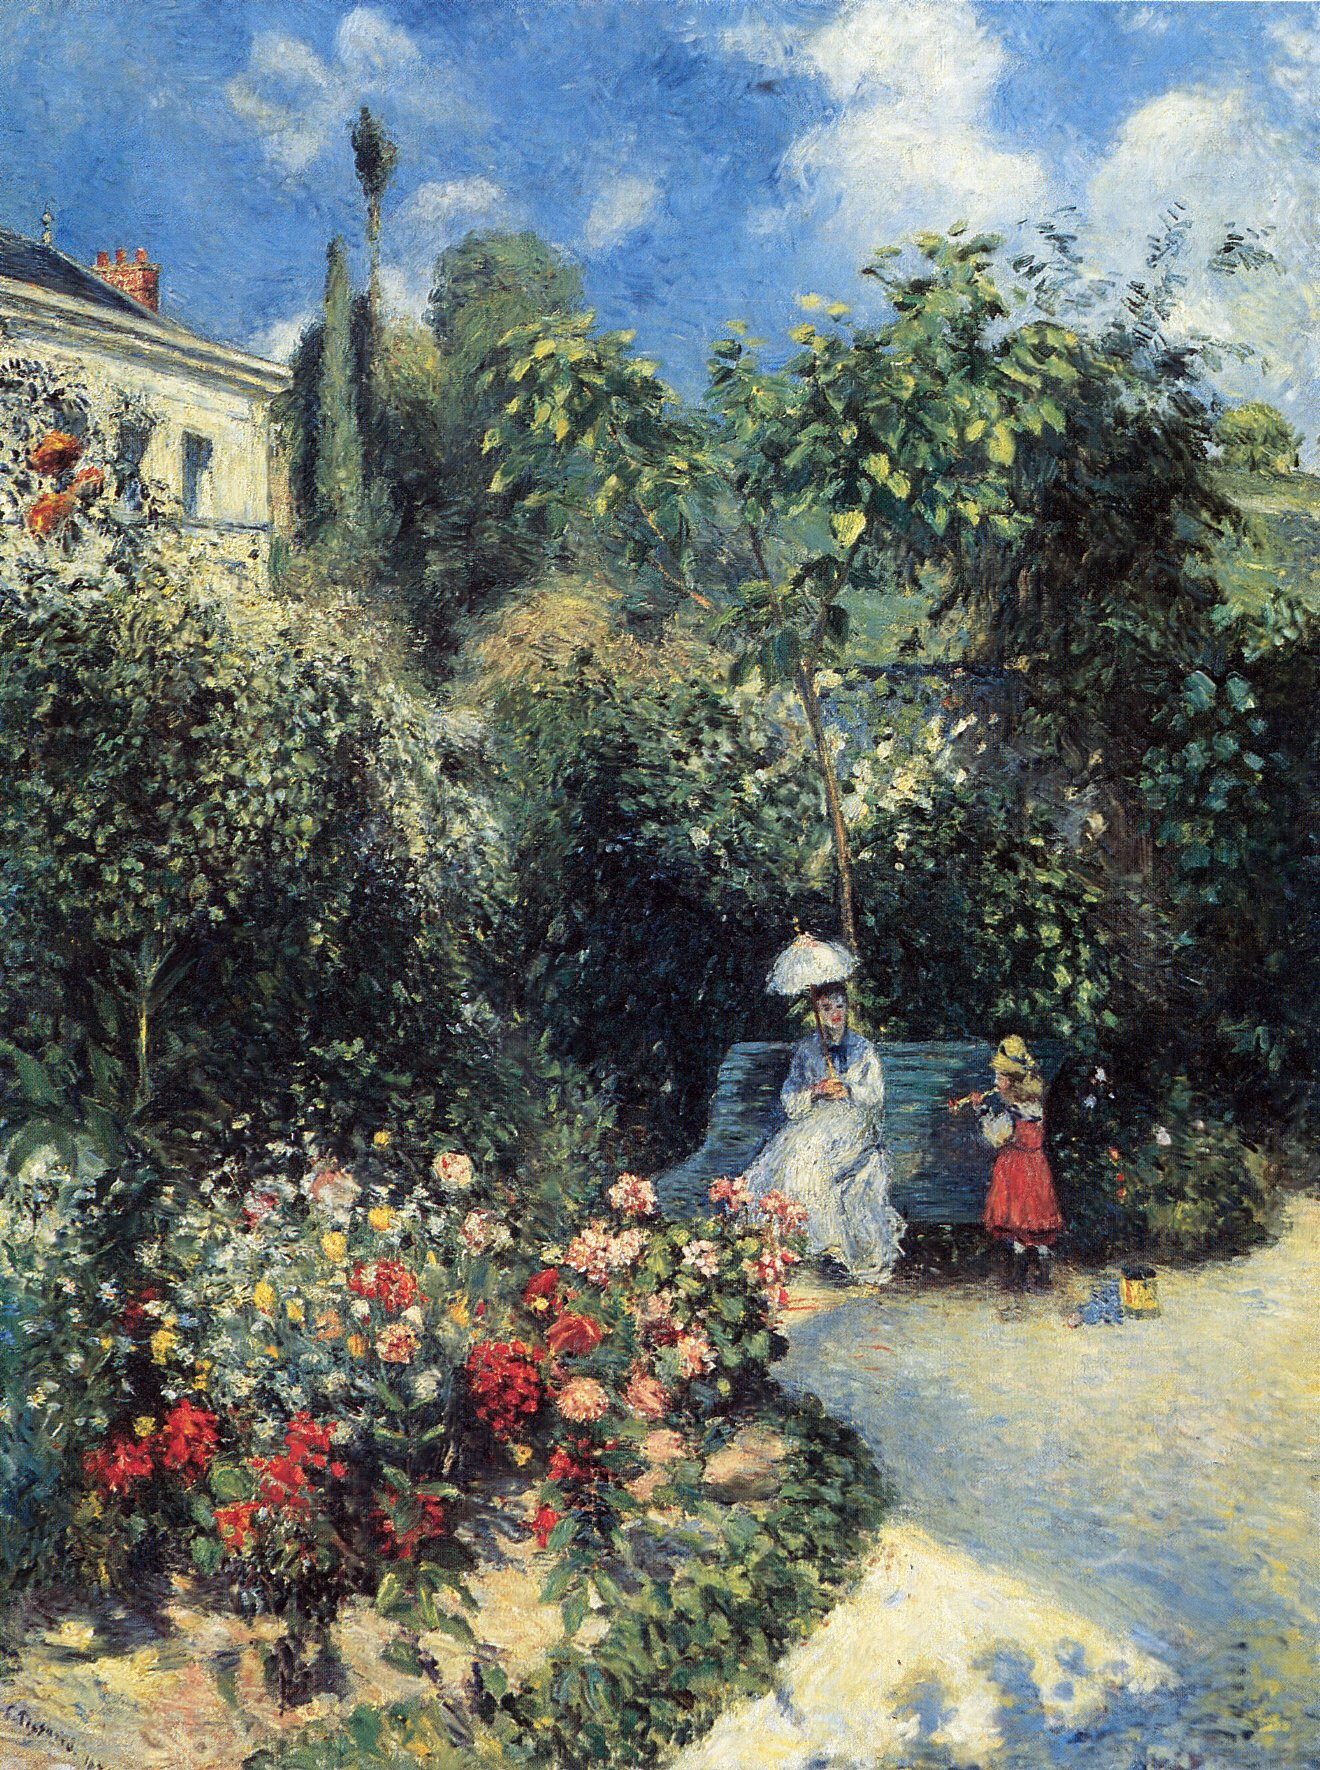 file camille pissarro dans le jardin des mathurins pontoise wikipedia. Black Bedroom Furniture Sets. Home Design Ideas